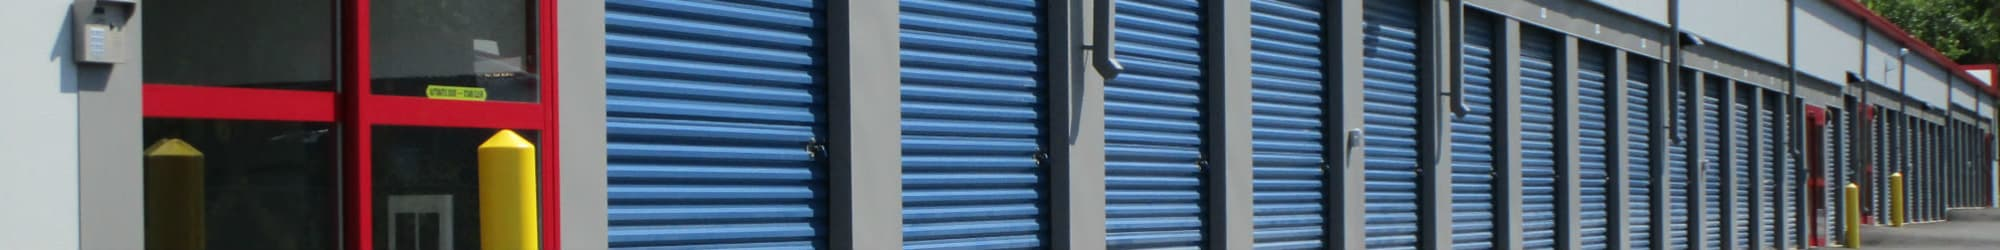 Self storage units in Manassas